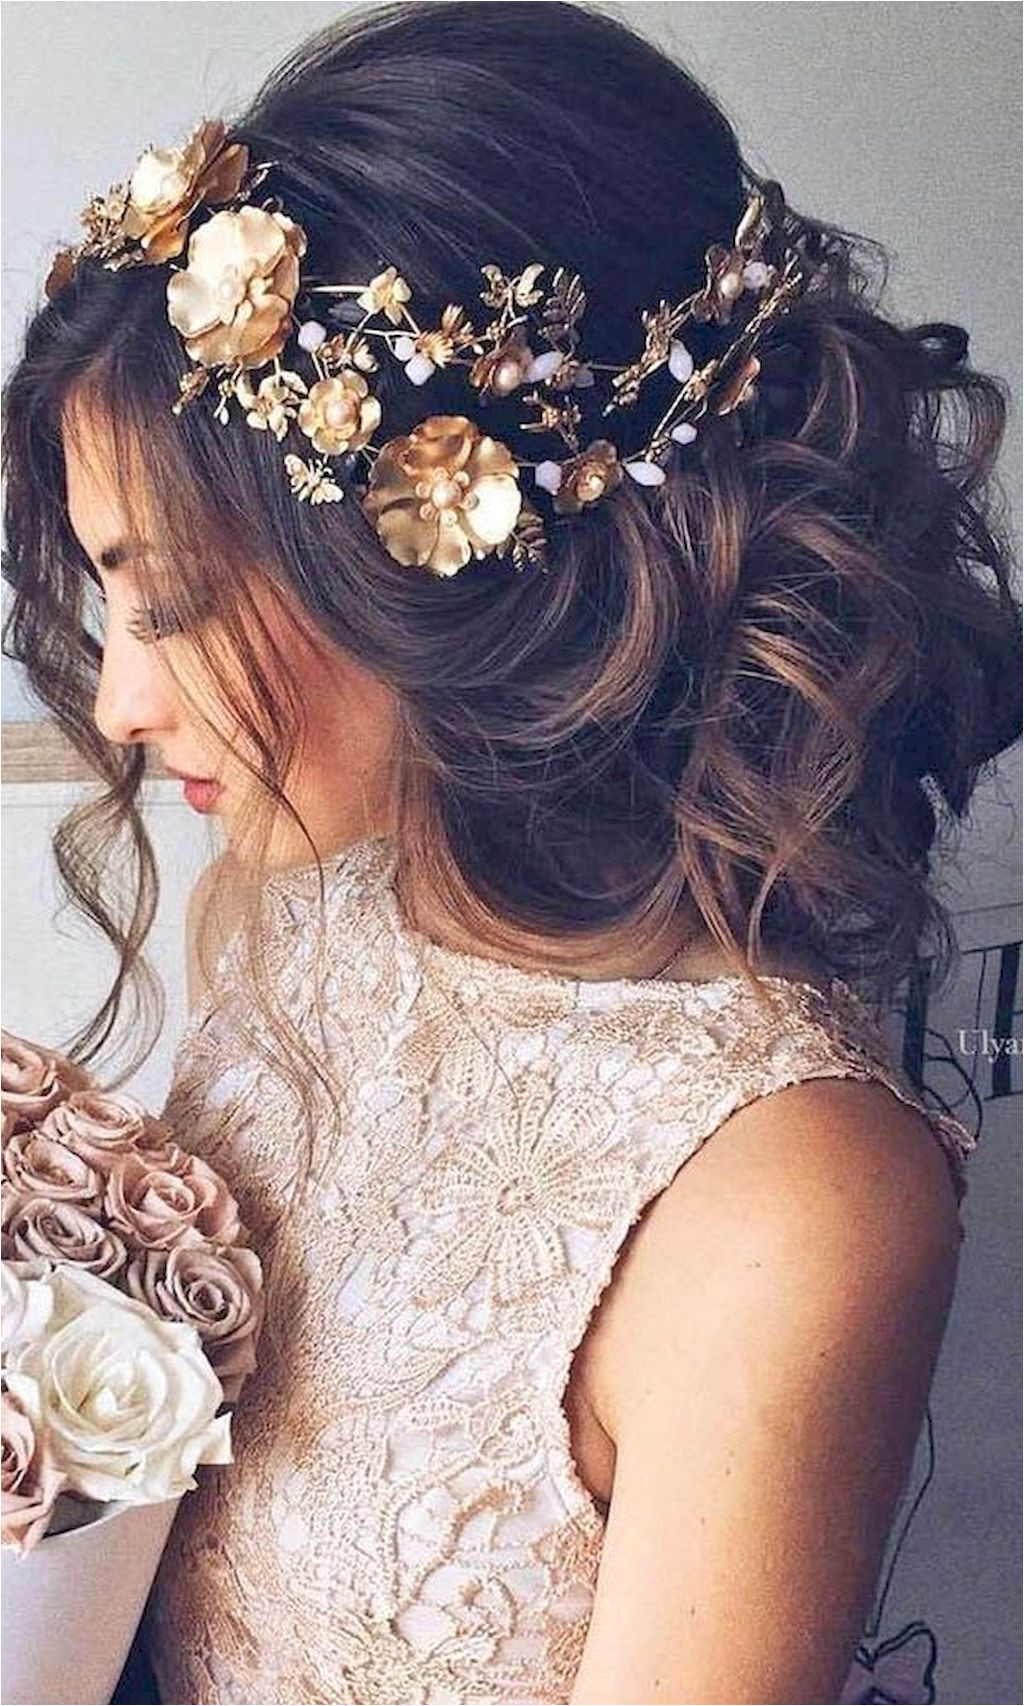 Cool 96 Bridal Wedding Hairstyles For Long Hair that will Inspire s bitecloth